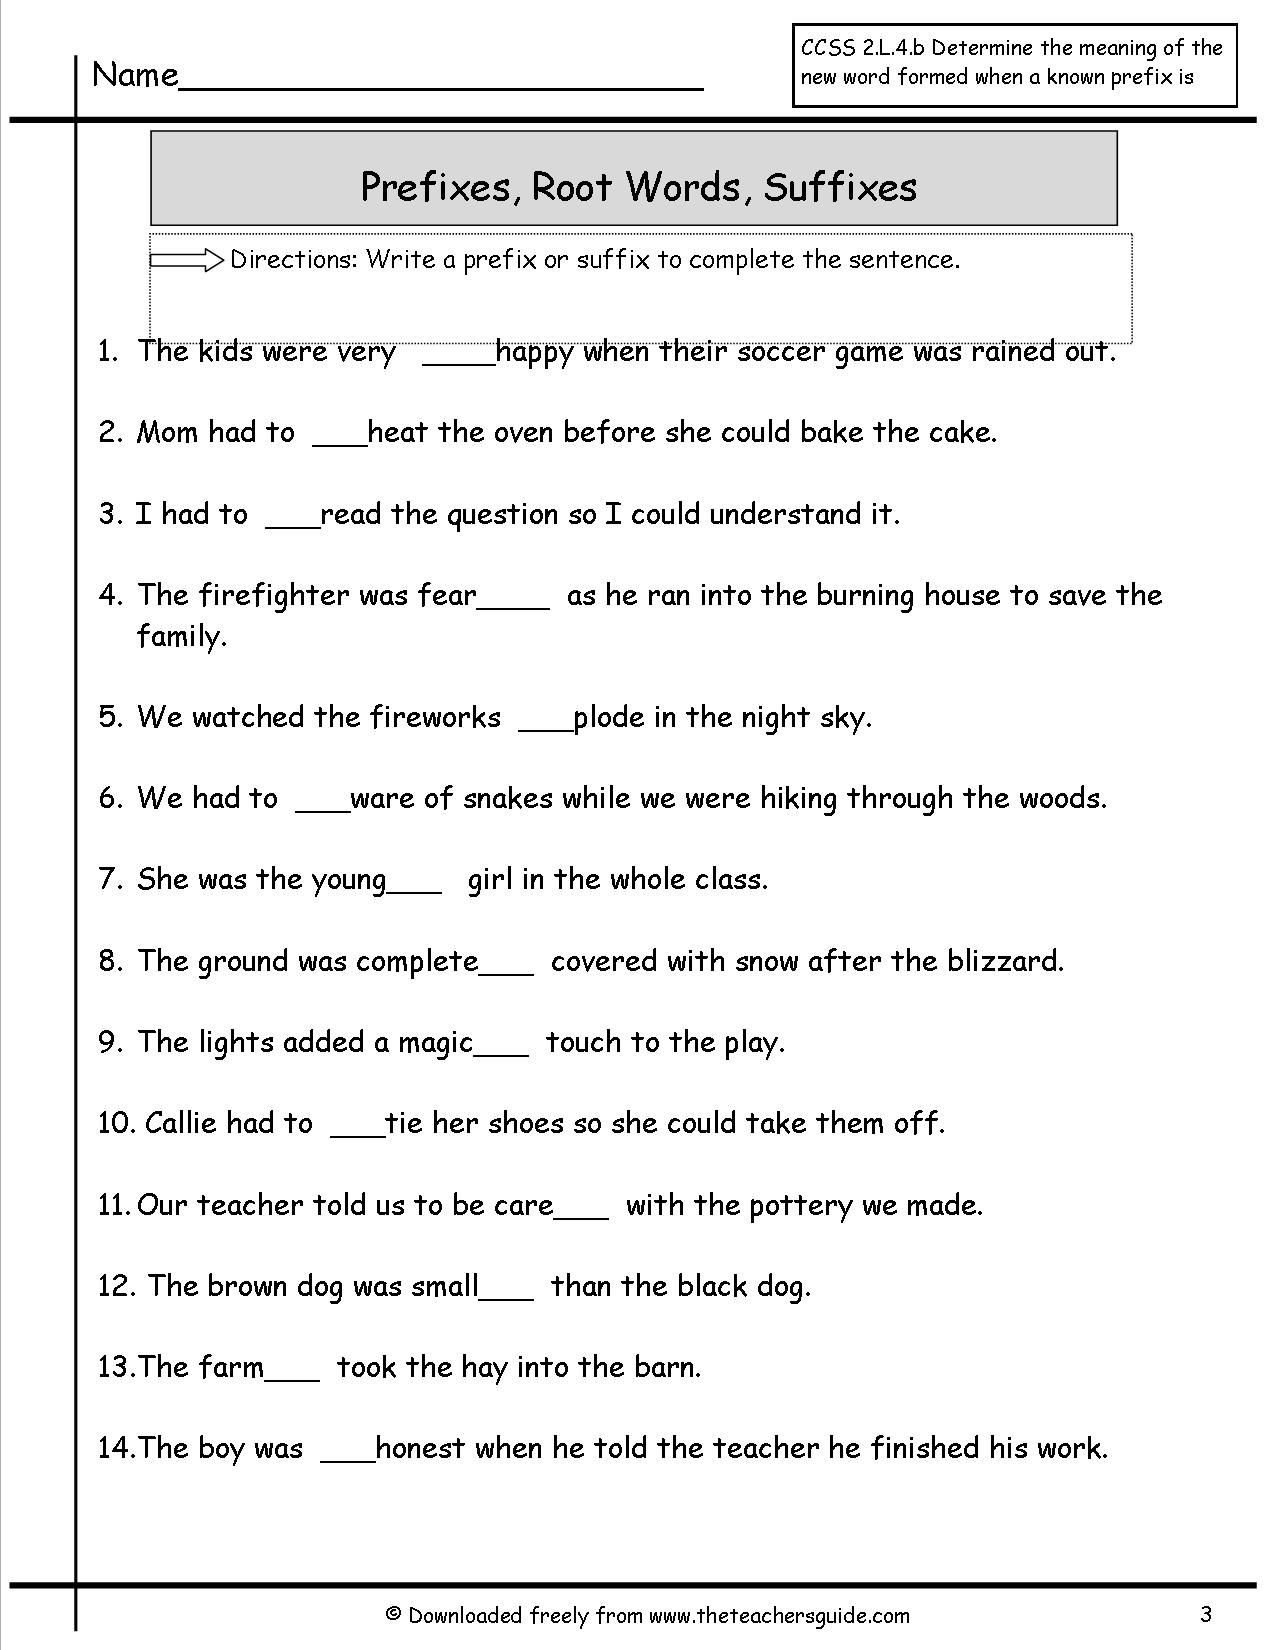 Suffixes Worksheets 4th Grade 41 Innovative Prefix Worksheets for You S